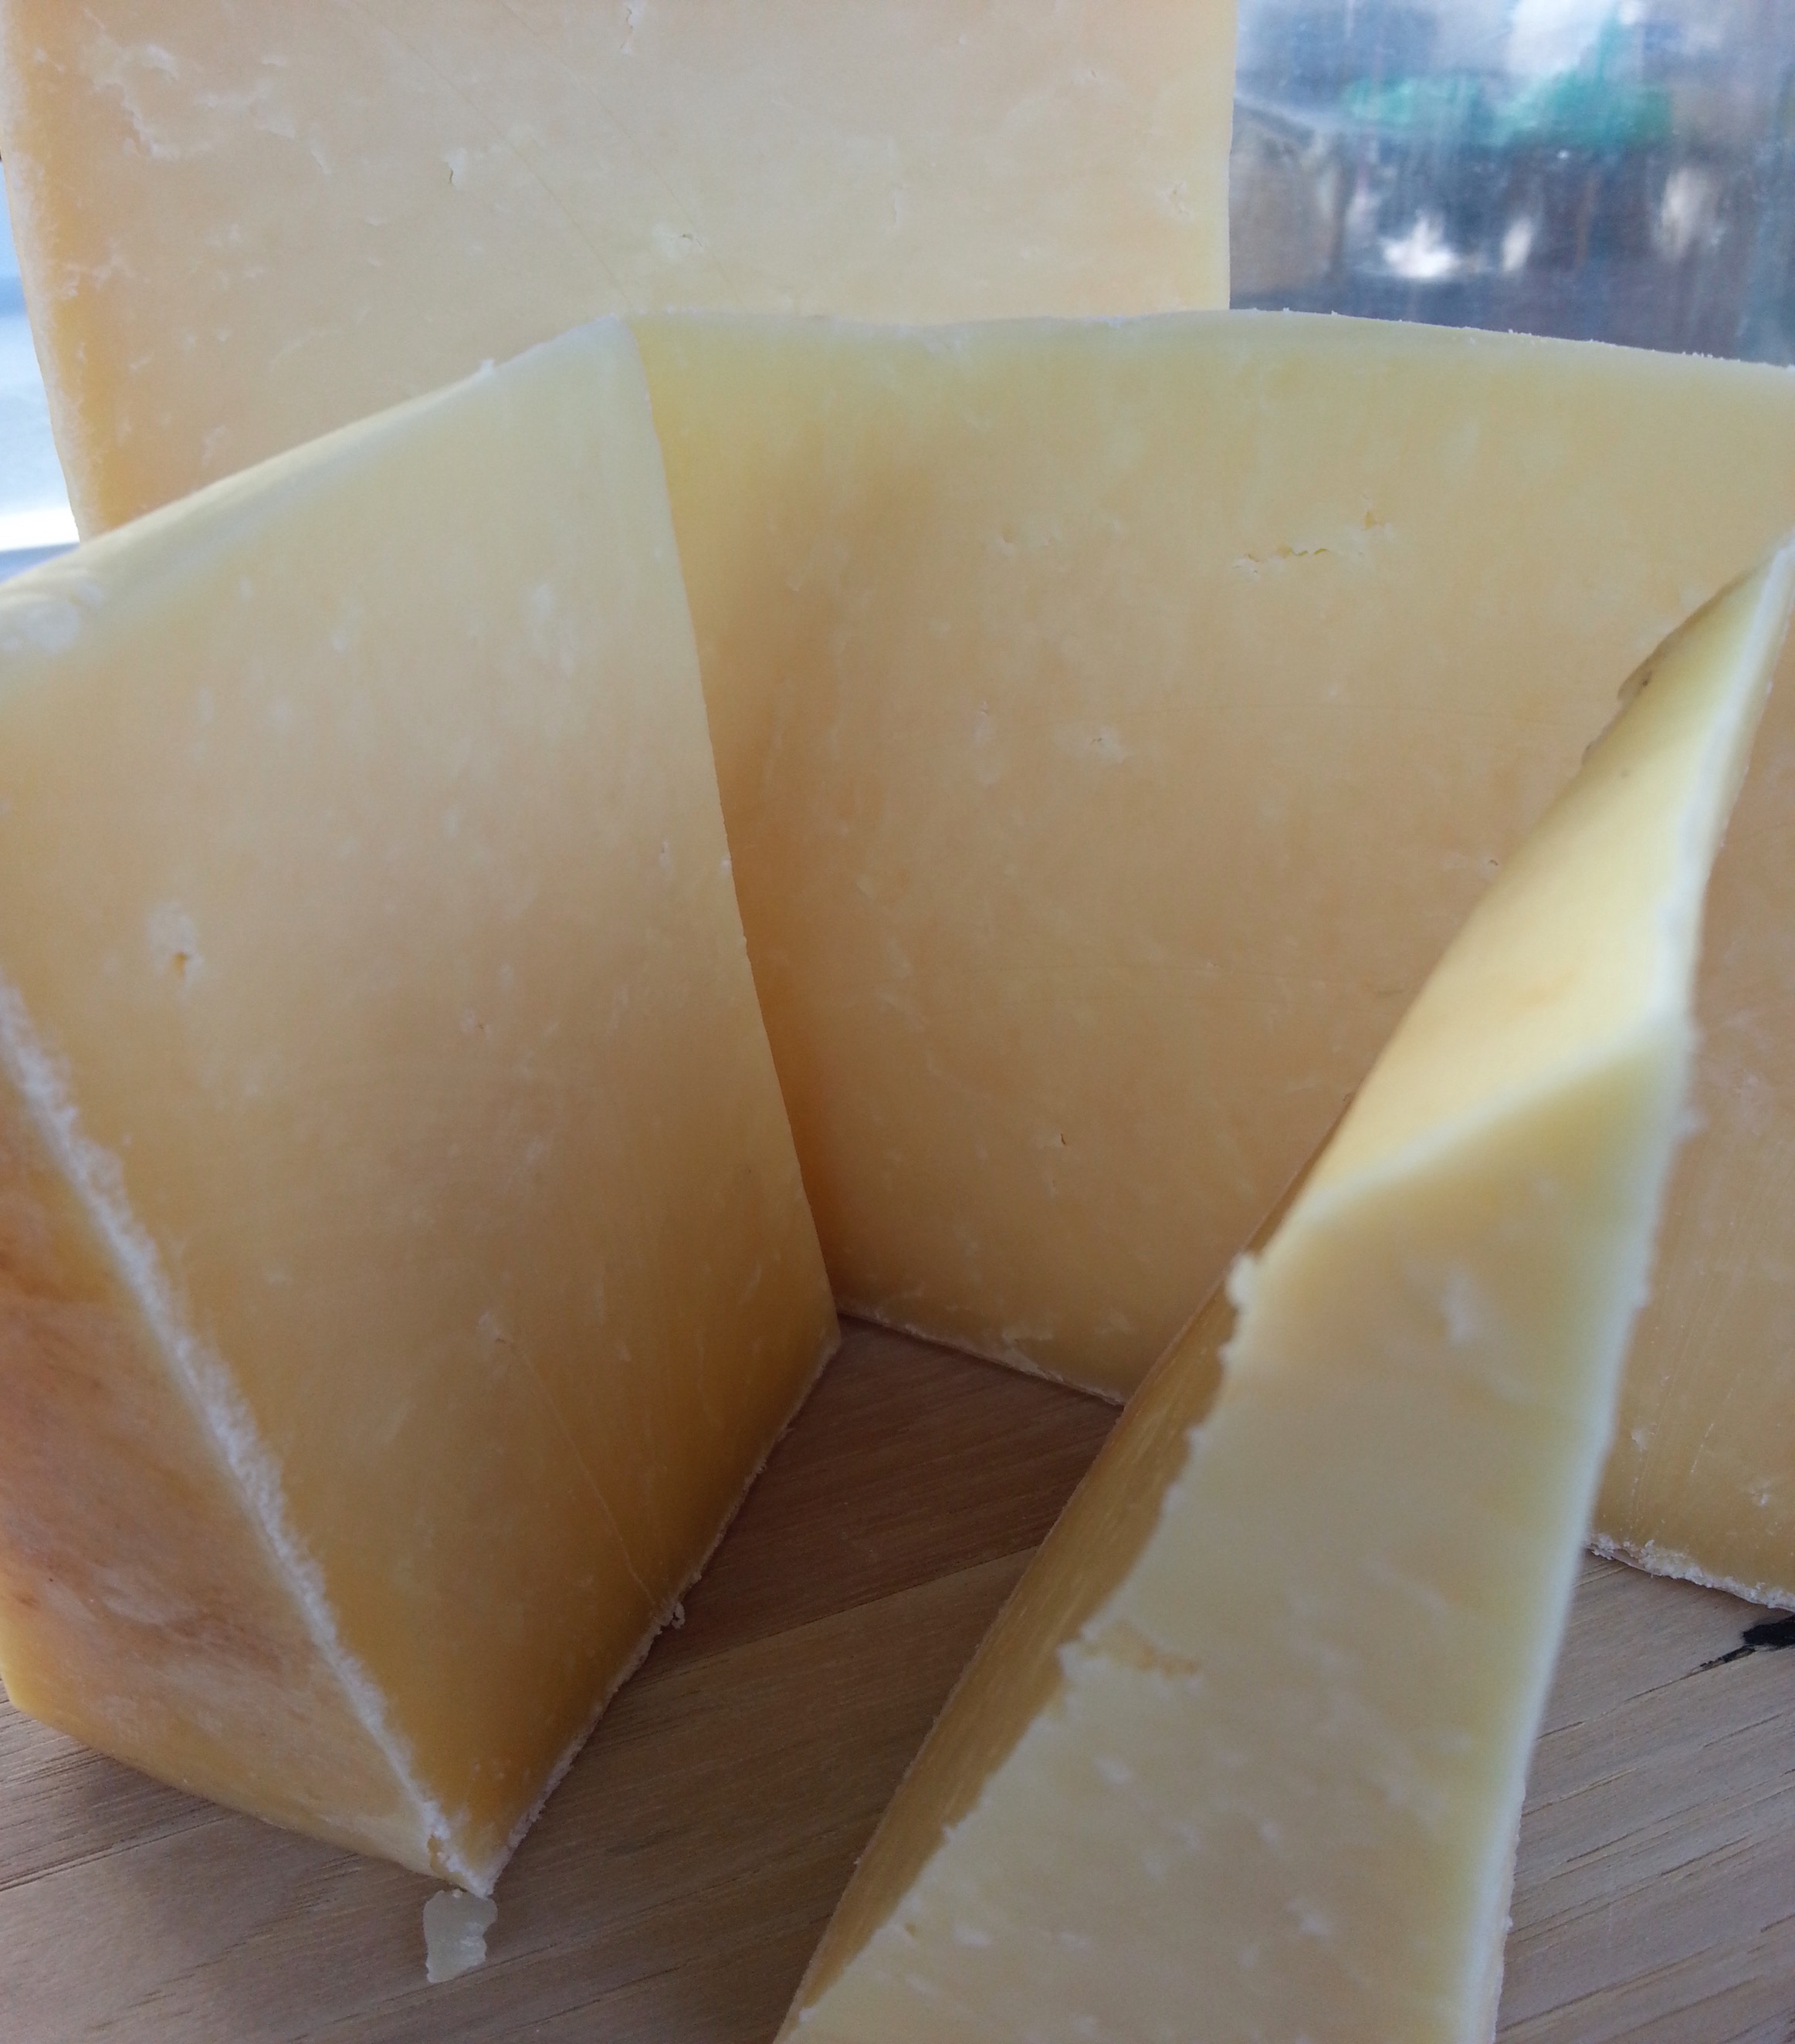 farmhouse cheddar mt eliza.jpg